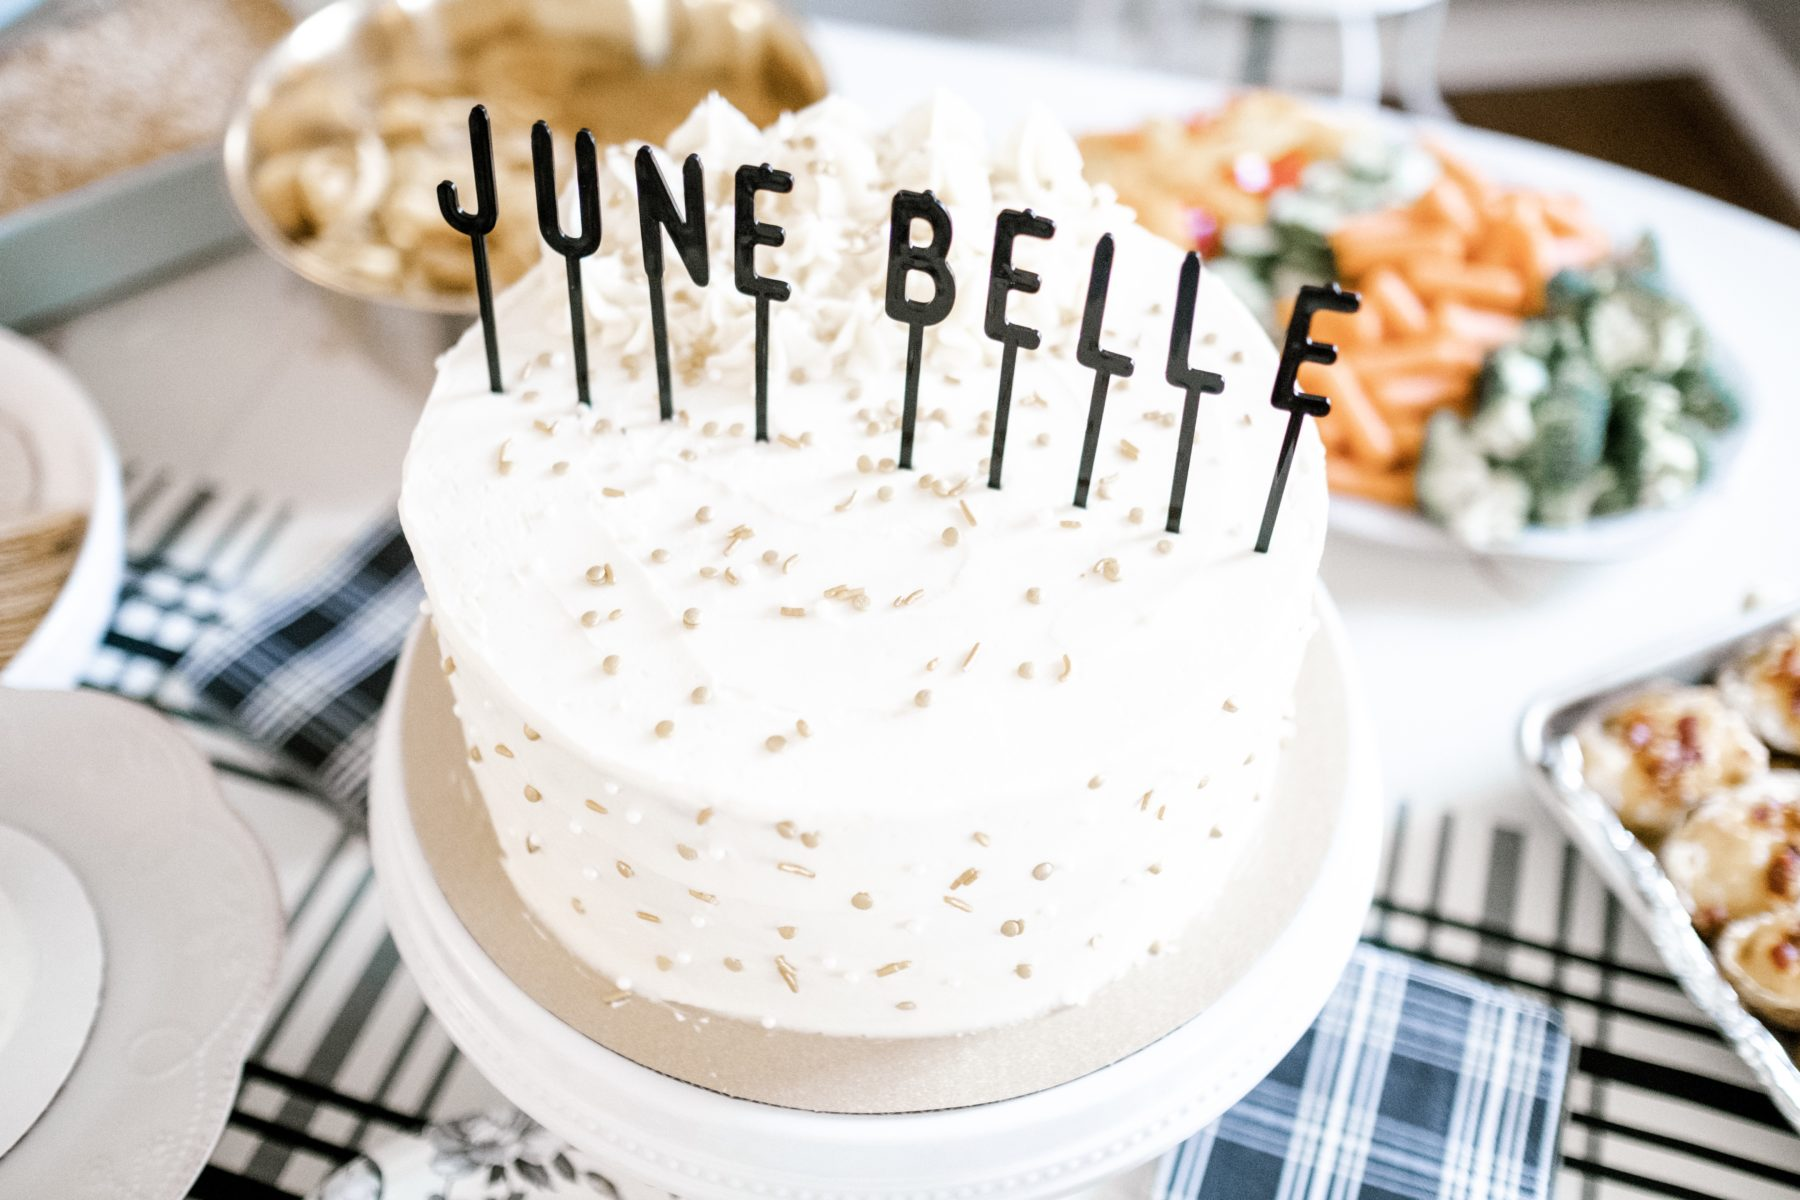 June Belle's First Birthday Party featured on Nashville Baby Guide